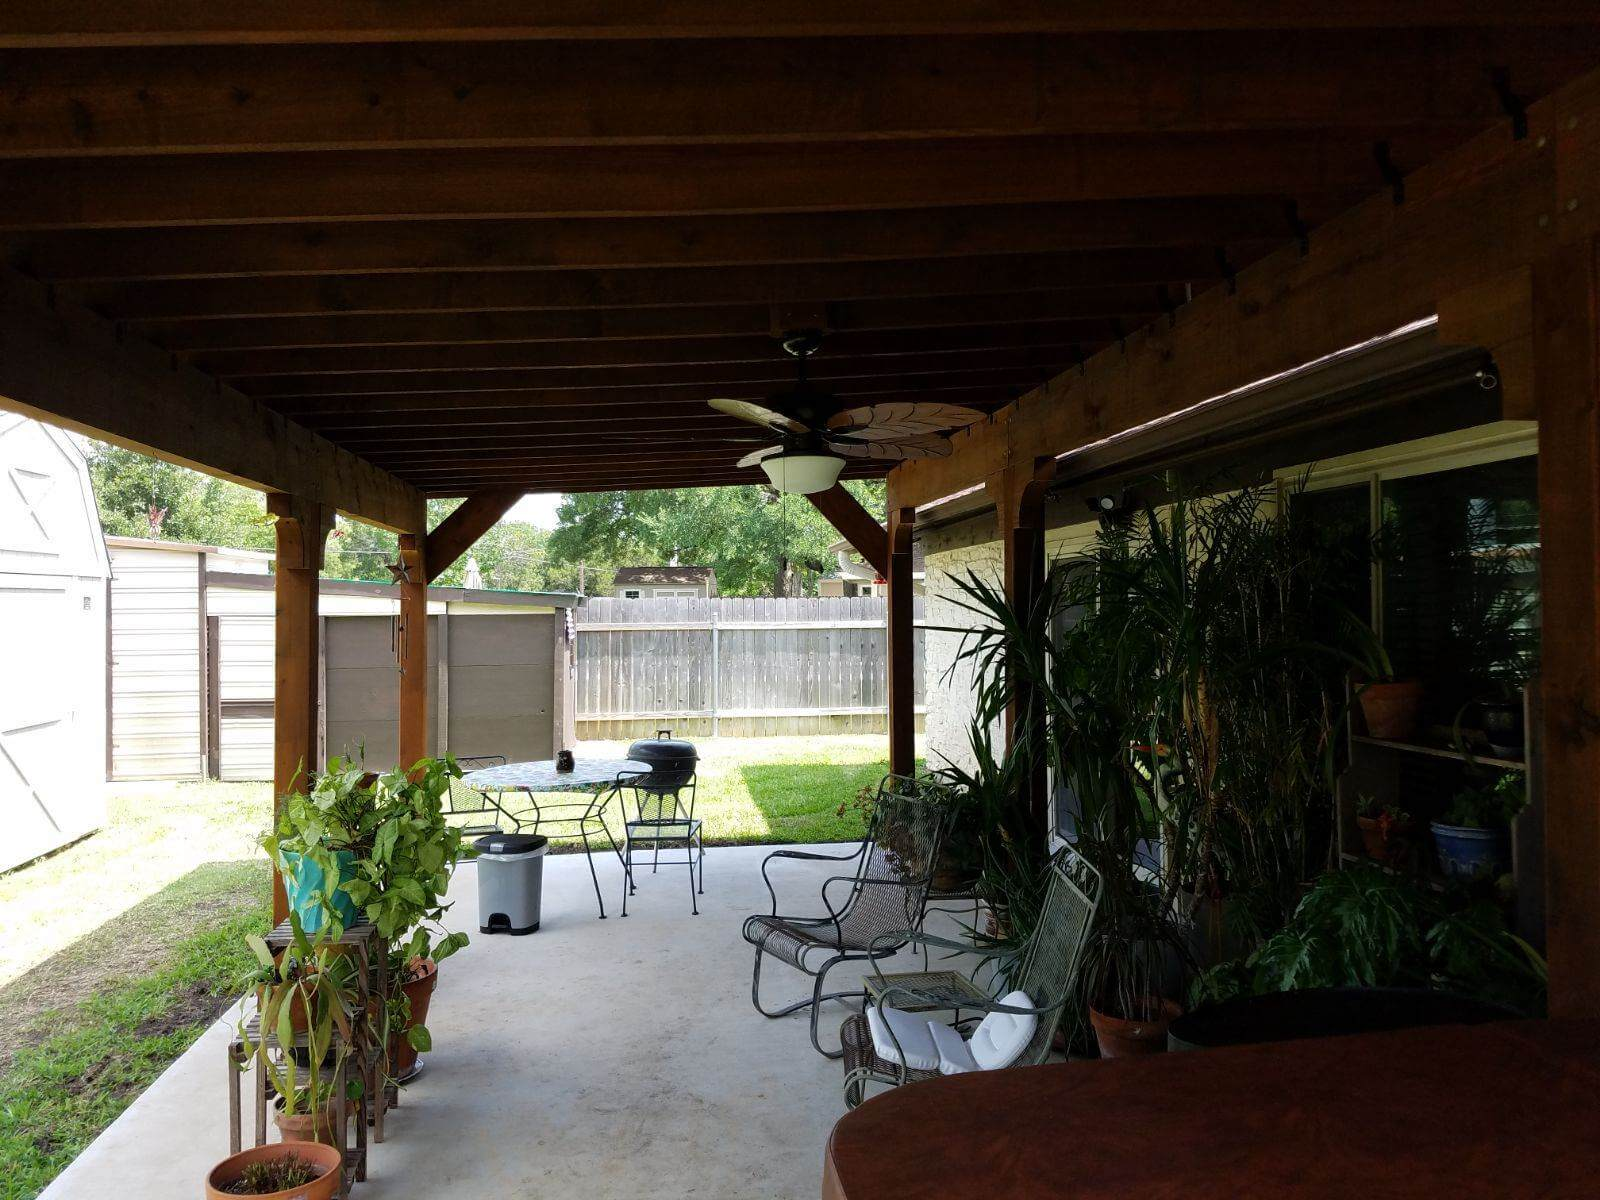 Pergola with ceiling fan over backyard patio